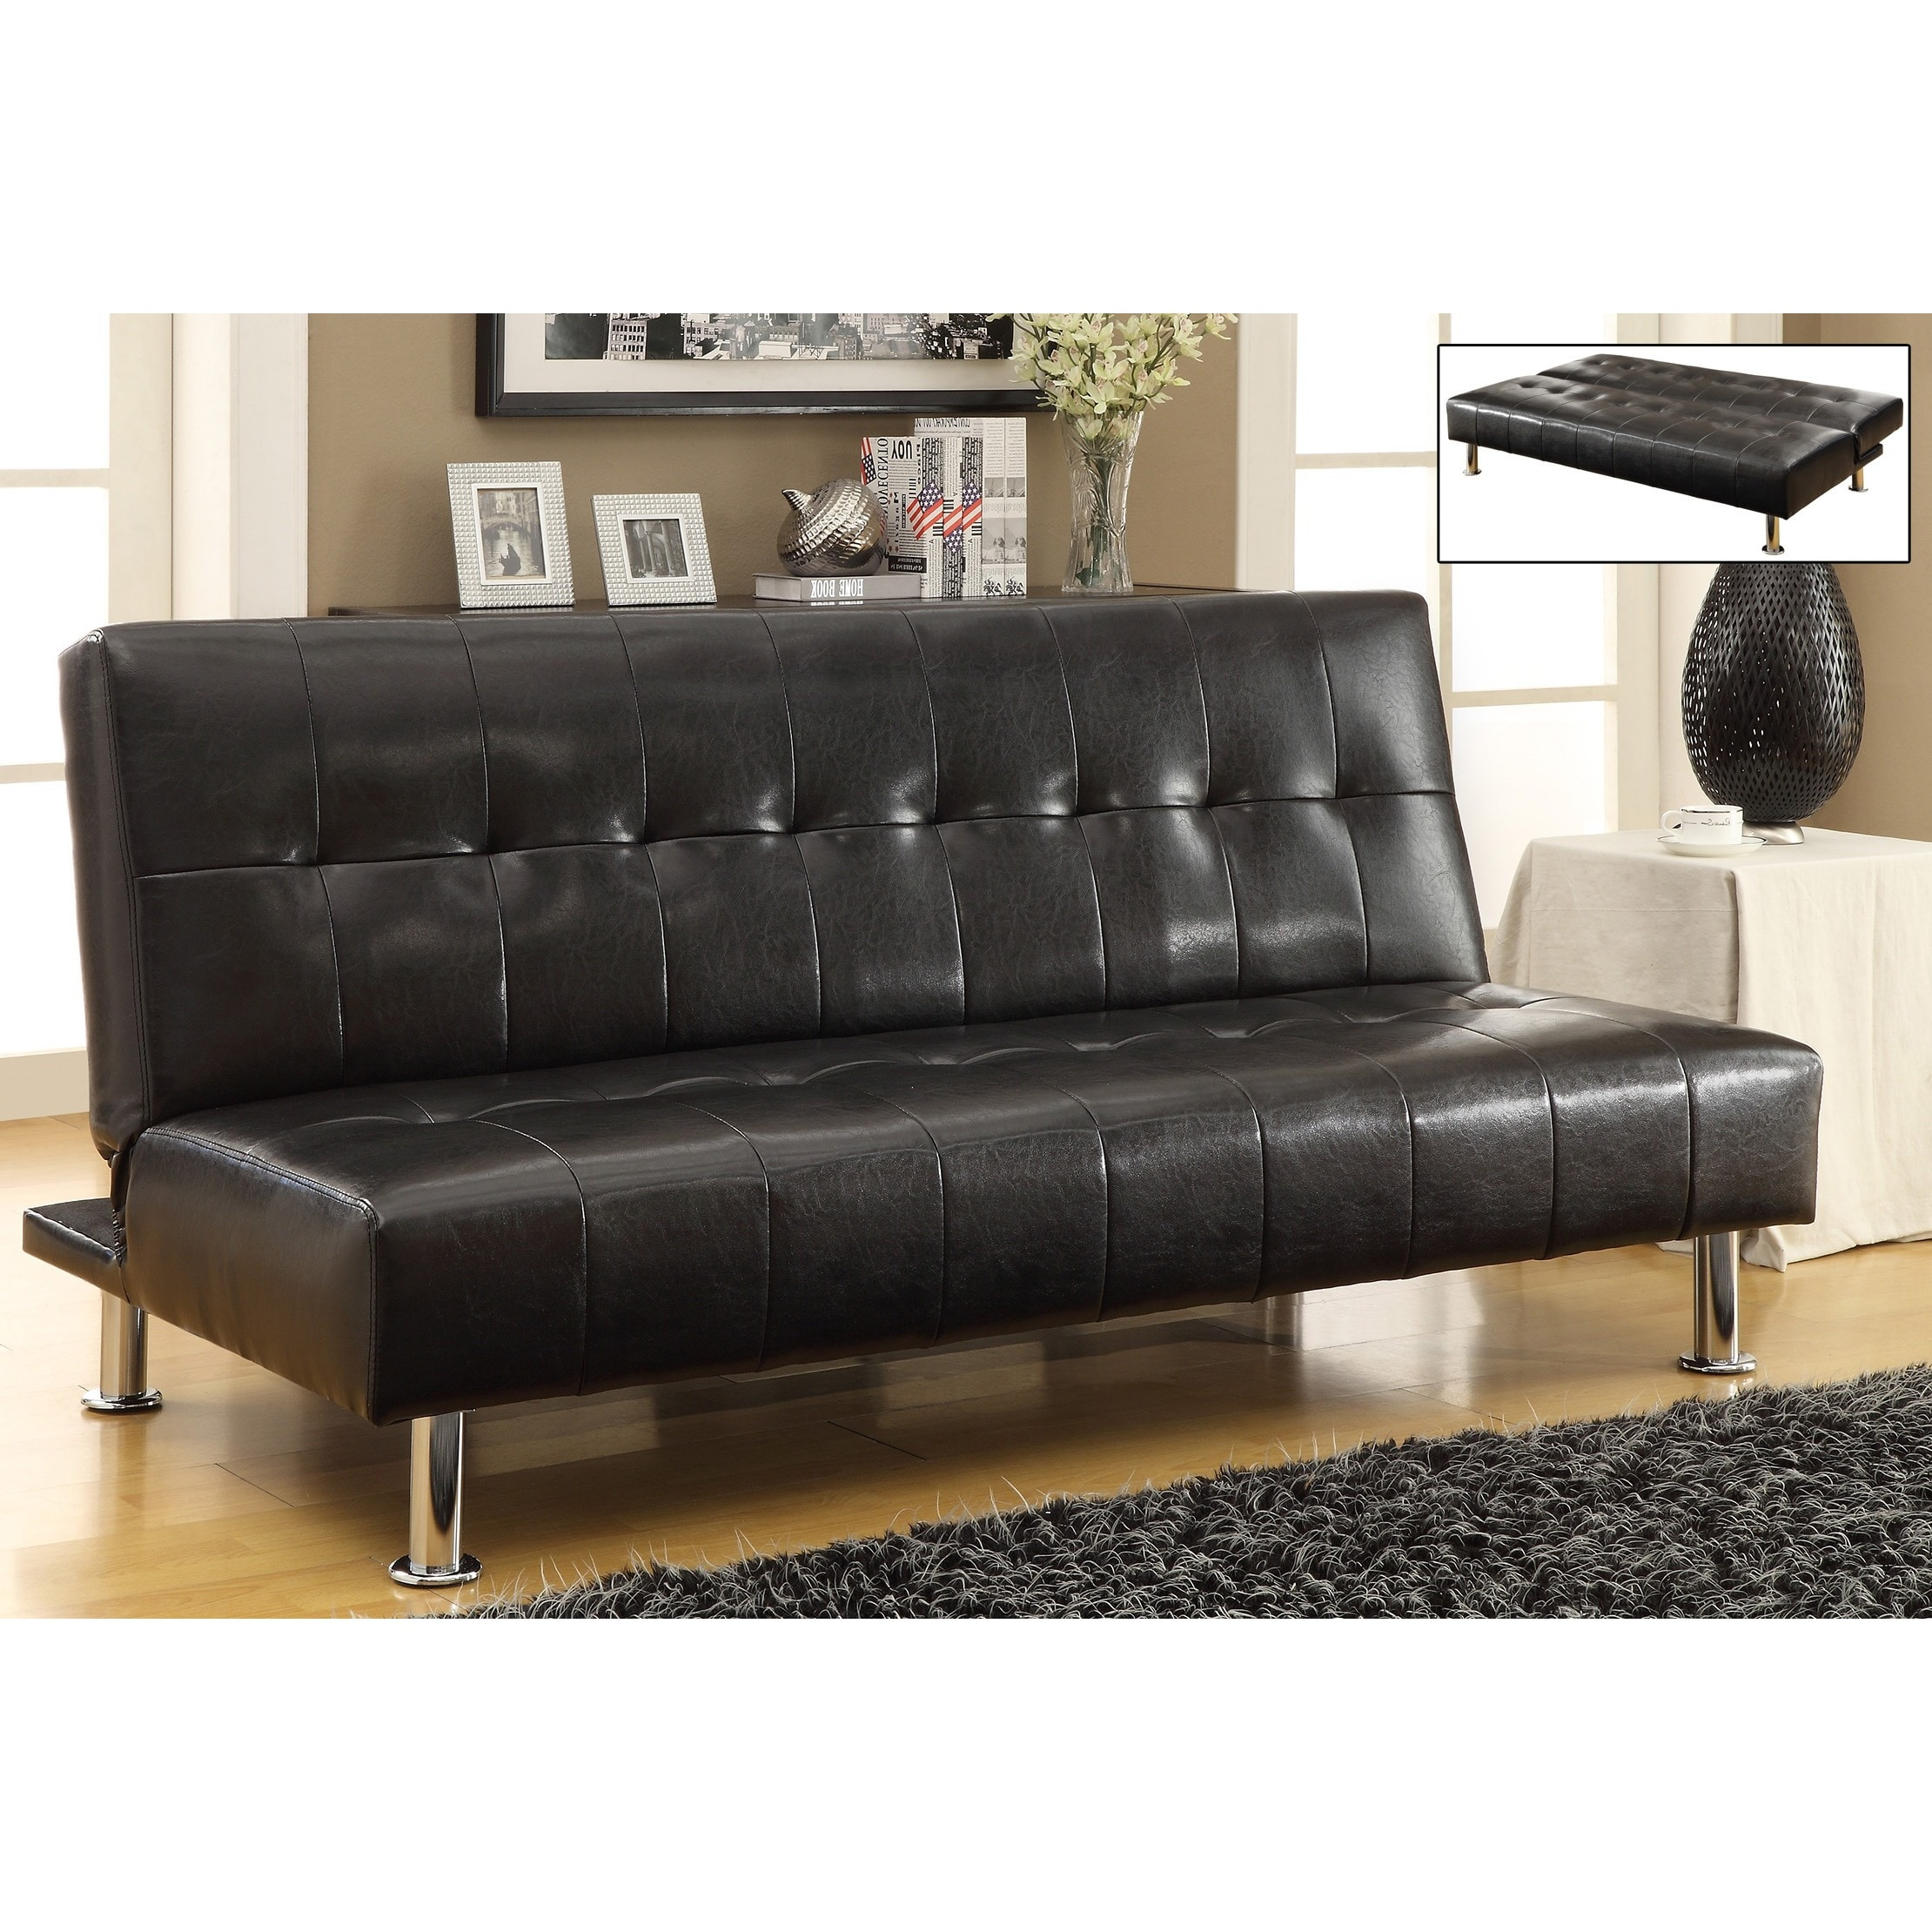 Loft Faux Leather Futon Free Shipping Today Overstock